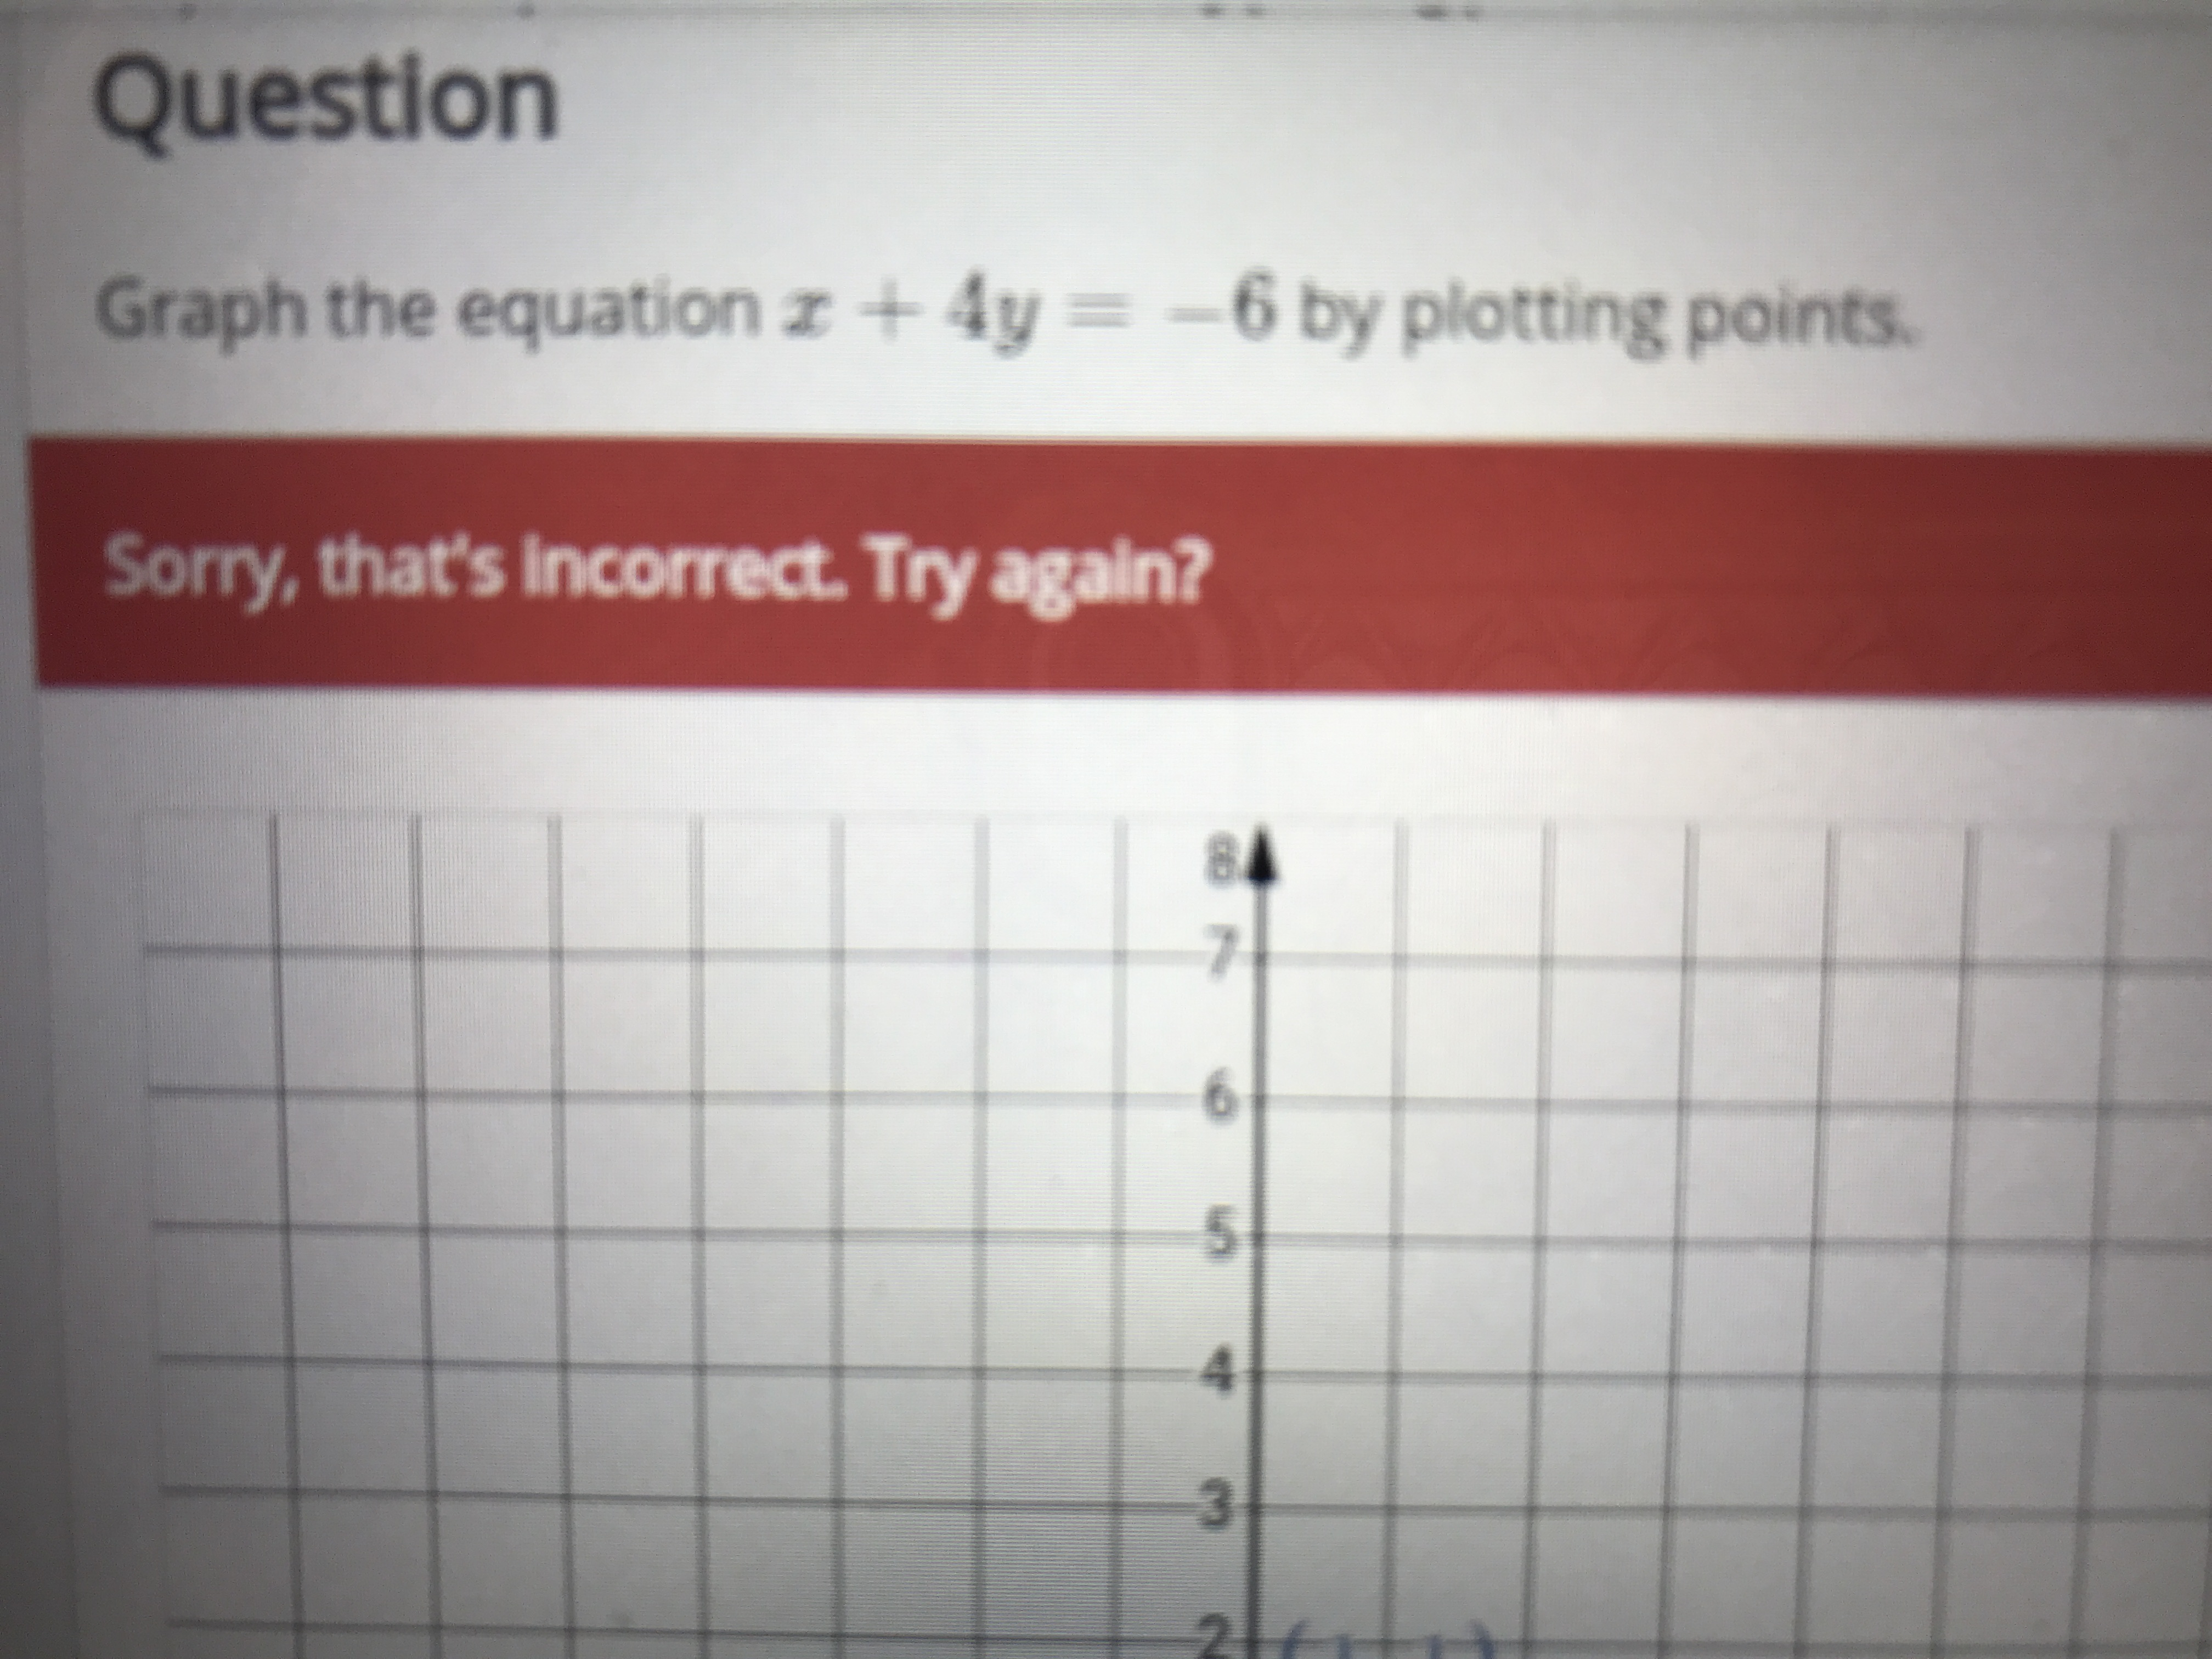 Question Graph the equation z +4y= -6 by plotting points. Sorry, that's incorrect. Try again? 6 3